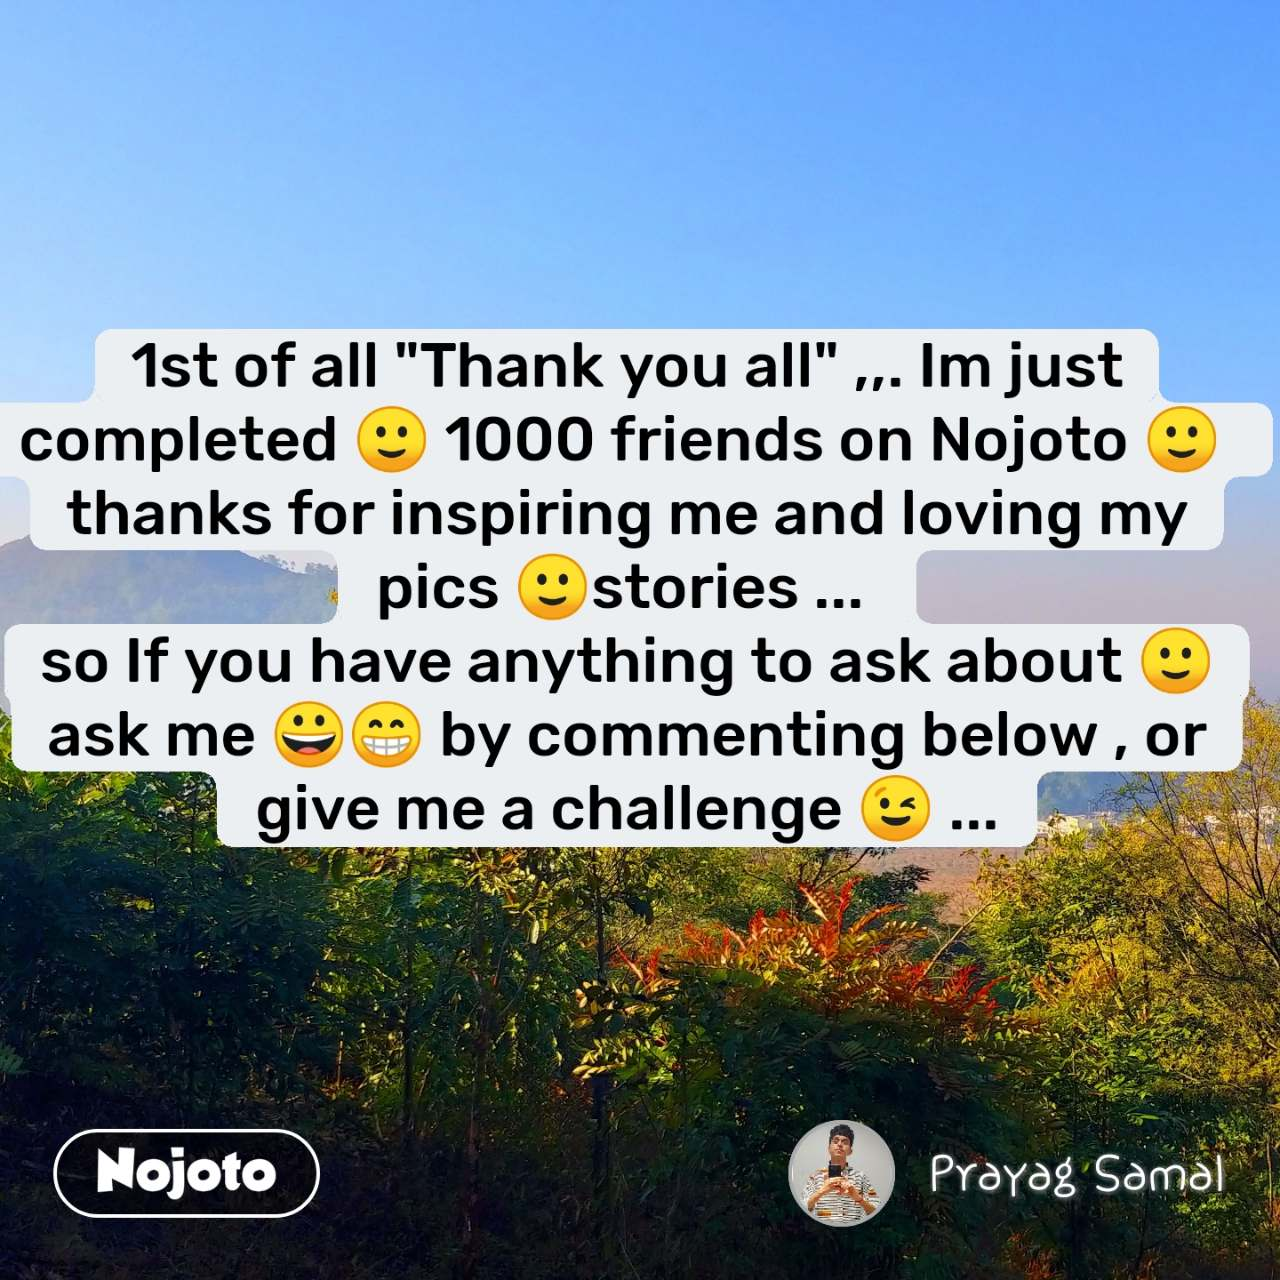 "1st of all ""Thank you all"" ,,. Im just completed 🙂 1000 friends on Nojoto 🙂  thanks for inspiring me and loving my pics 🙂stories ...  so If you have anything to ask about 🙂 ask me 😀😁 by commenting below , or give me a challenge 😉 ...  #NojotoQuote"